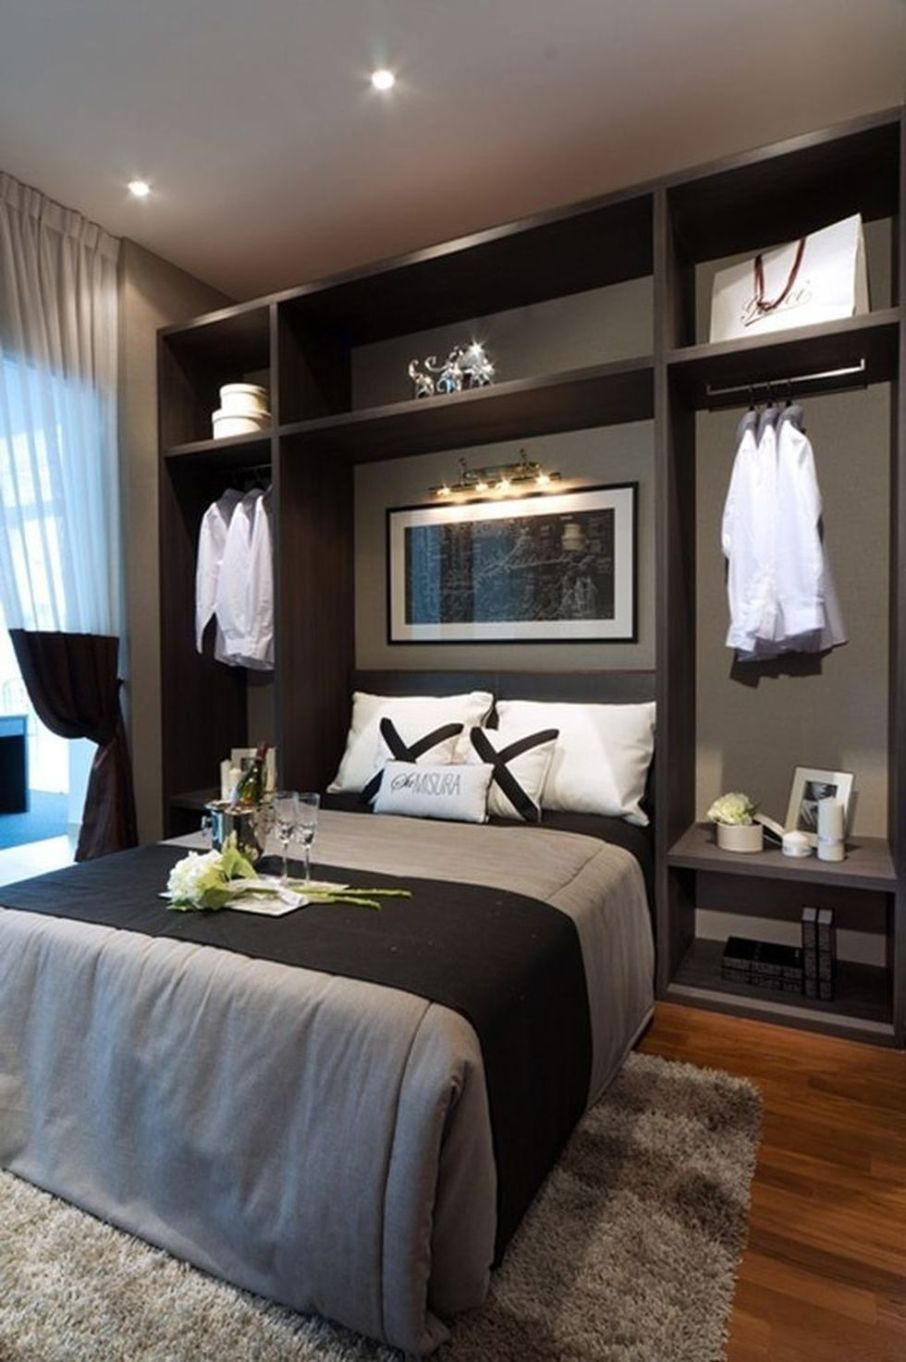 Cool modern bedroom design ideas 1 in 2019 Small room